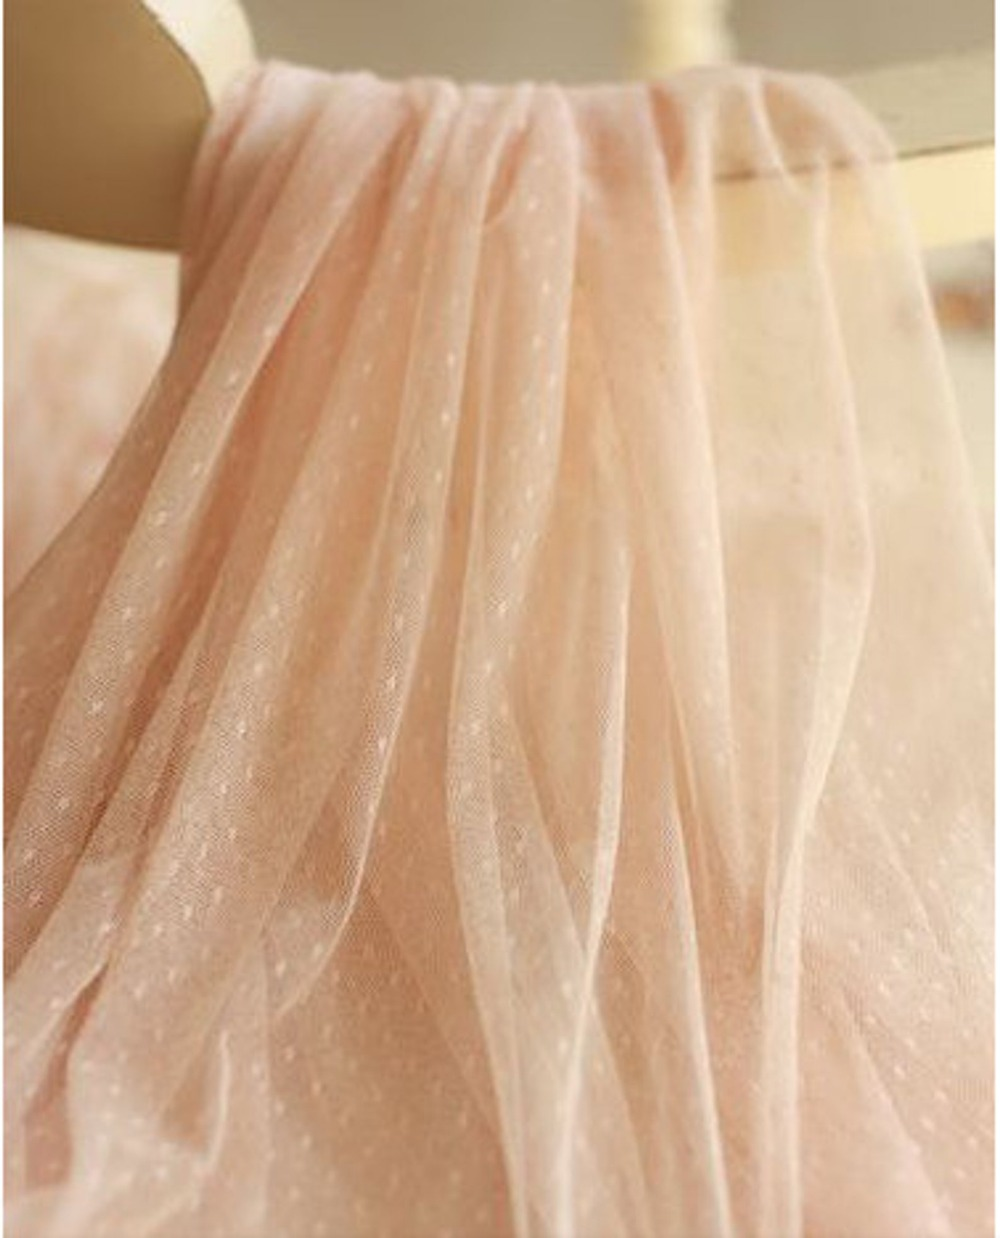 5 yards dotted soft tulle lace fabric for bridal veil doll dress, baby prom , flower girl dress wedding gown making 150cm wide